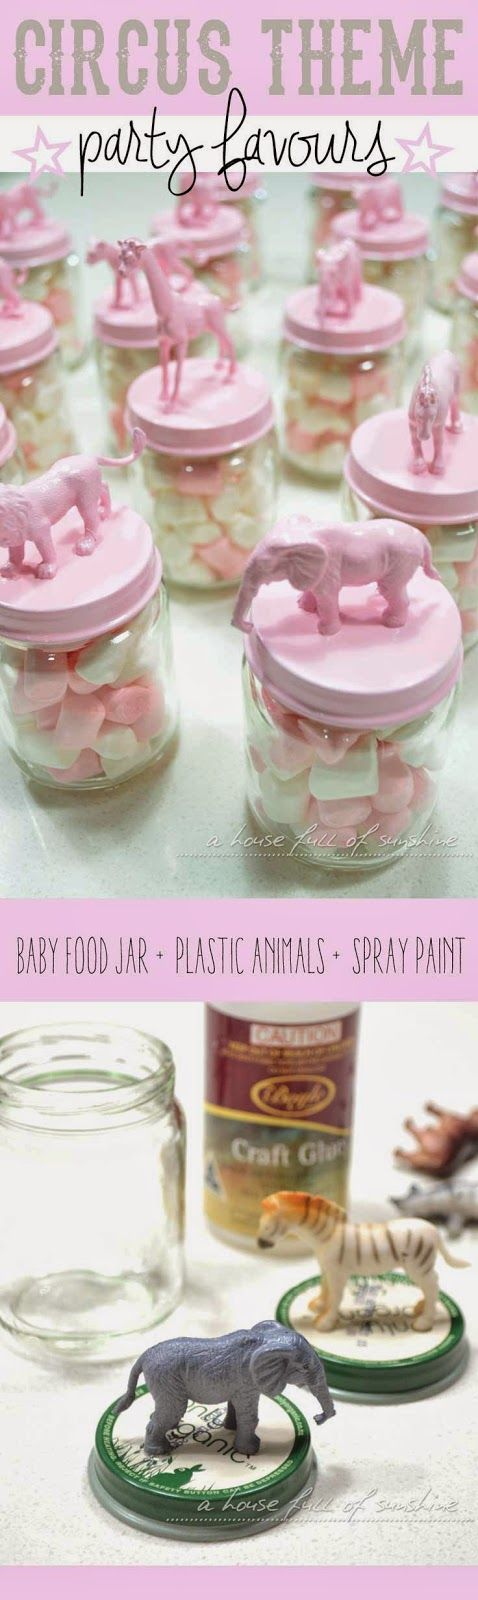 Cute idea for a child's party - circus theme party favours! So simple and effective!  Pegar animalitos de plastico en la tapa del frasco, y luego pintar la tapa del color que desean.